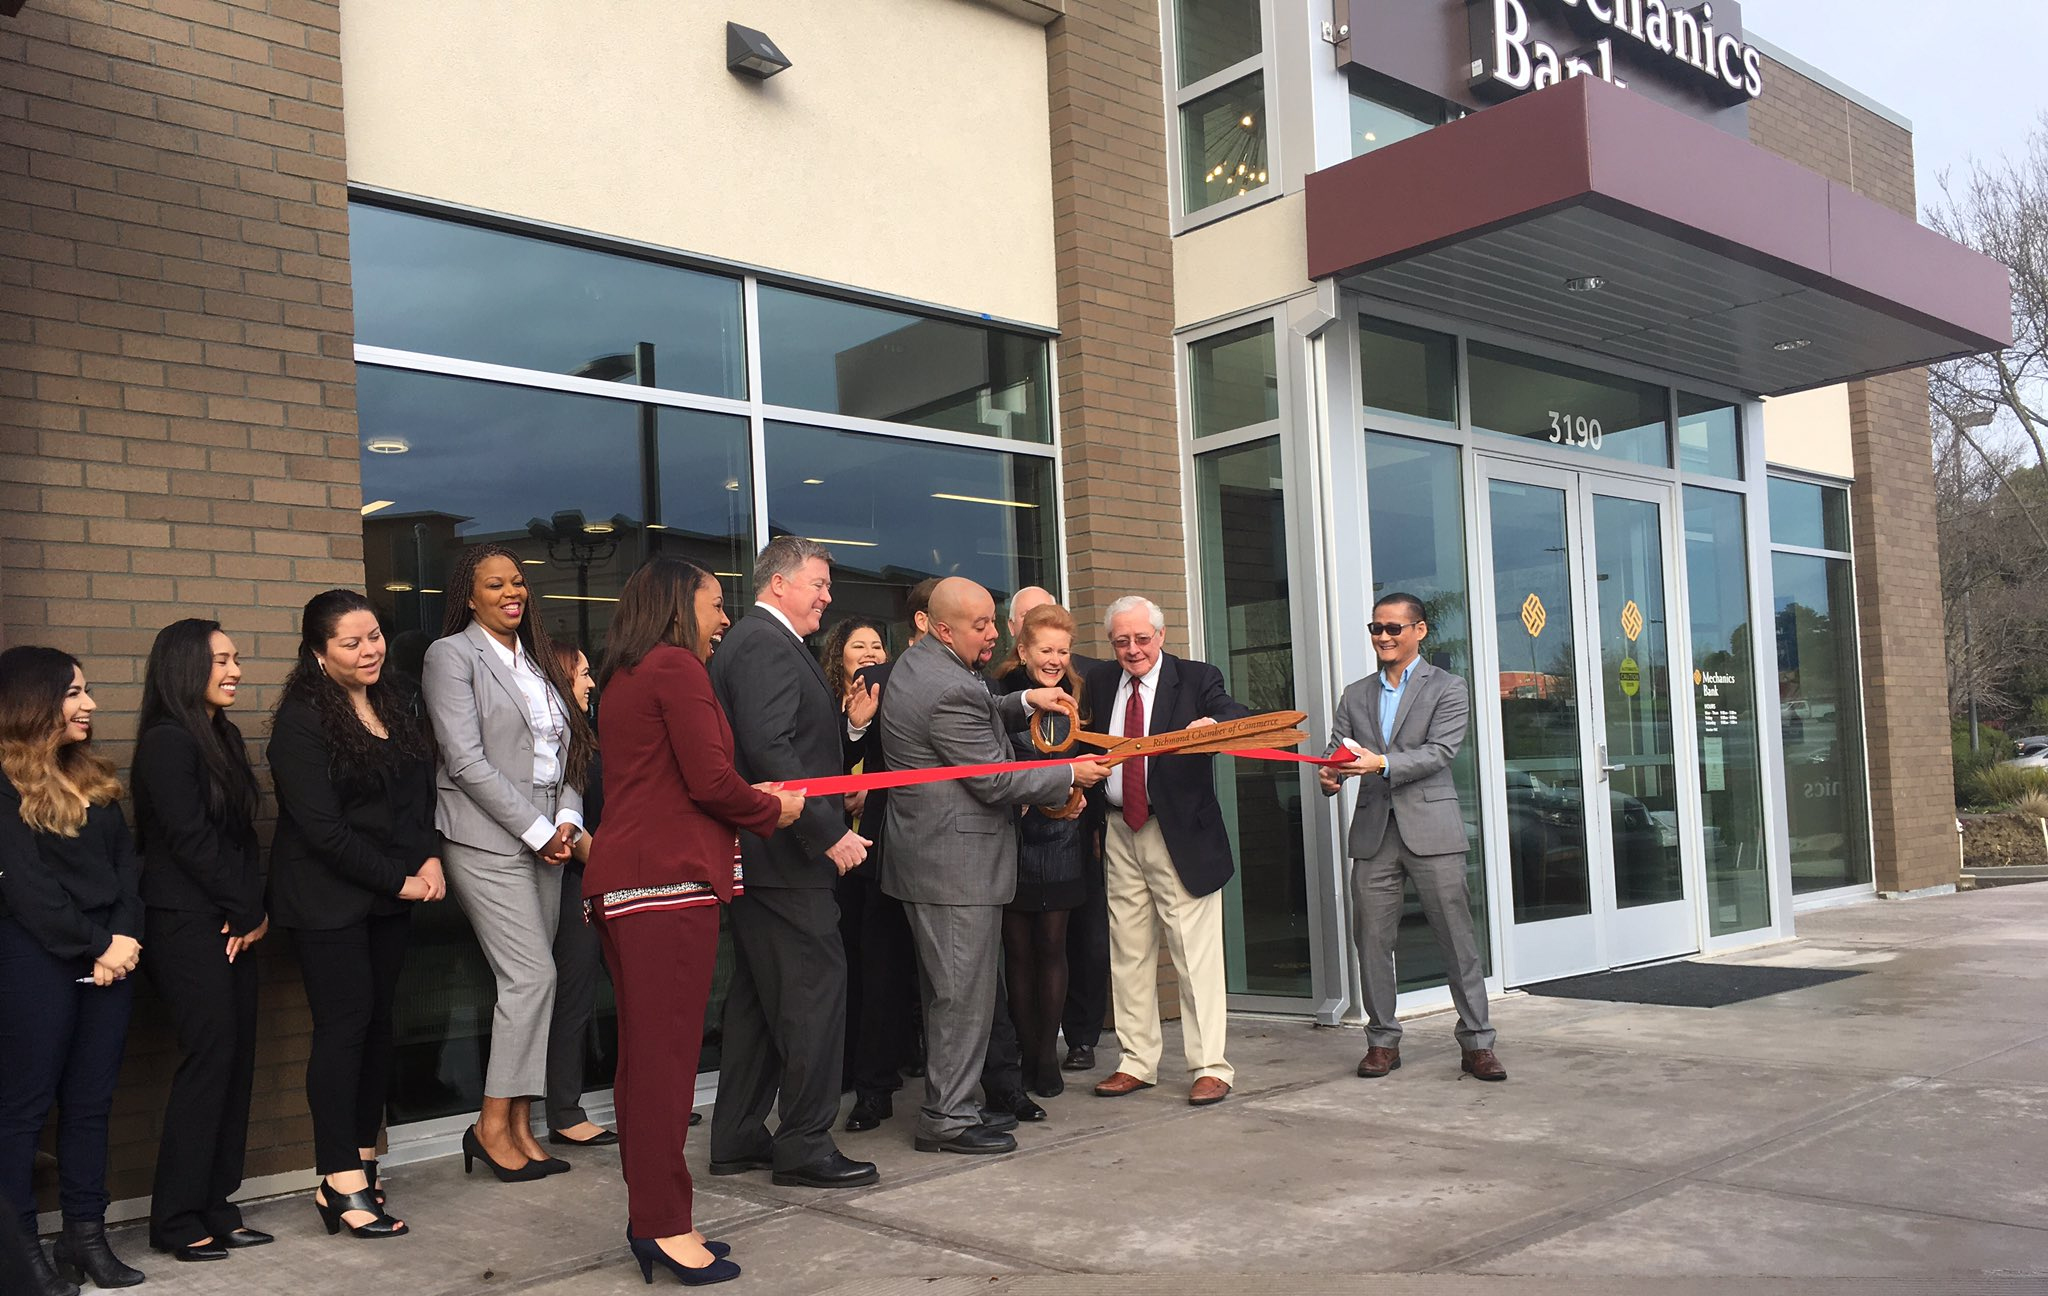 Mechanics Bank's new branch in Hilltop includes spacious community room